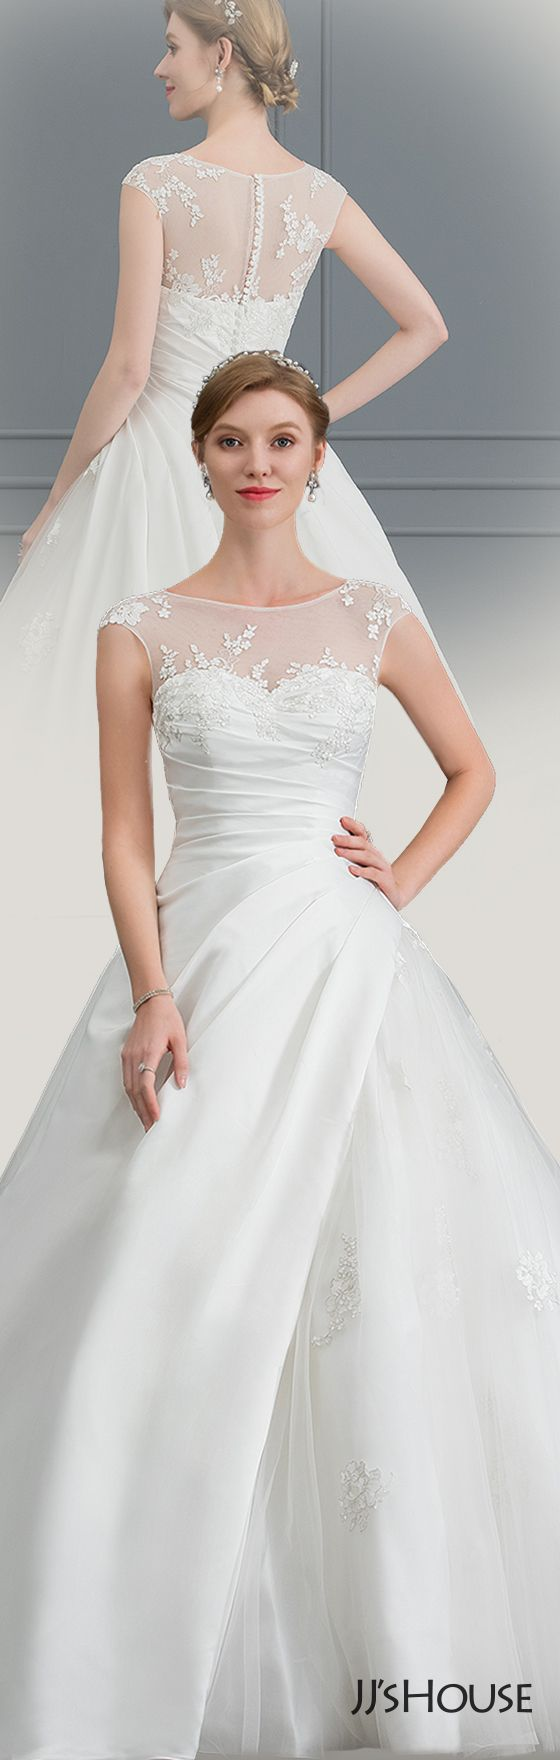 Us 277 00 Ball Gown Princess Illusion Court Train Satin Tulle Wedding Dress With Lace Jj S House Wedding Dresses Lace Wedding Dresses Tulle Wedding Dress